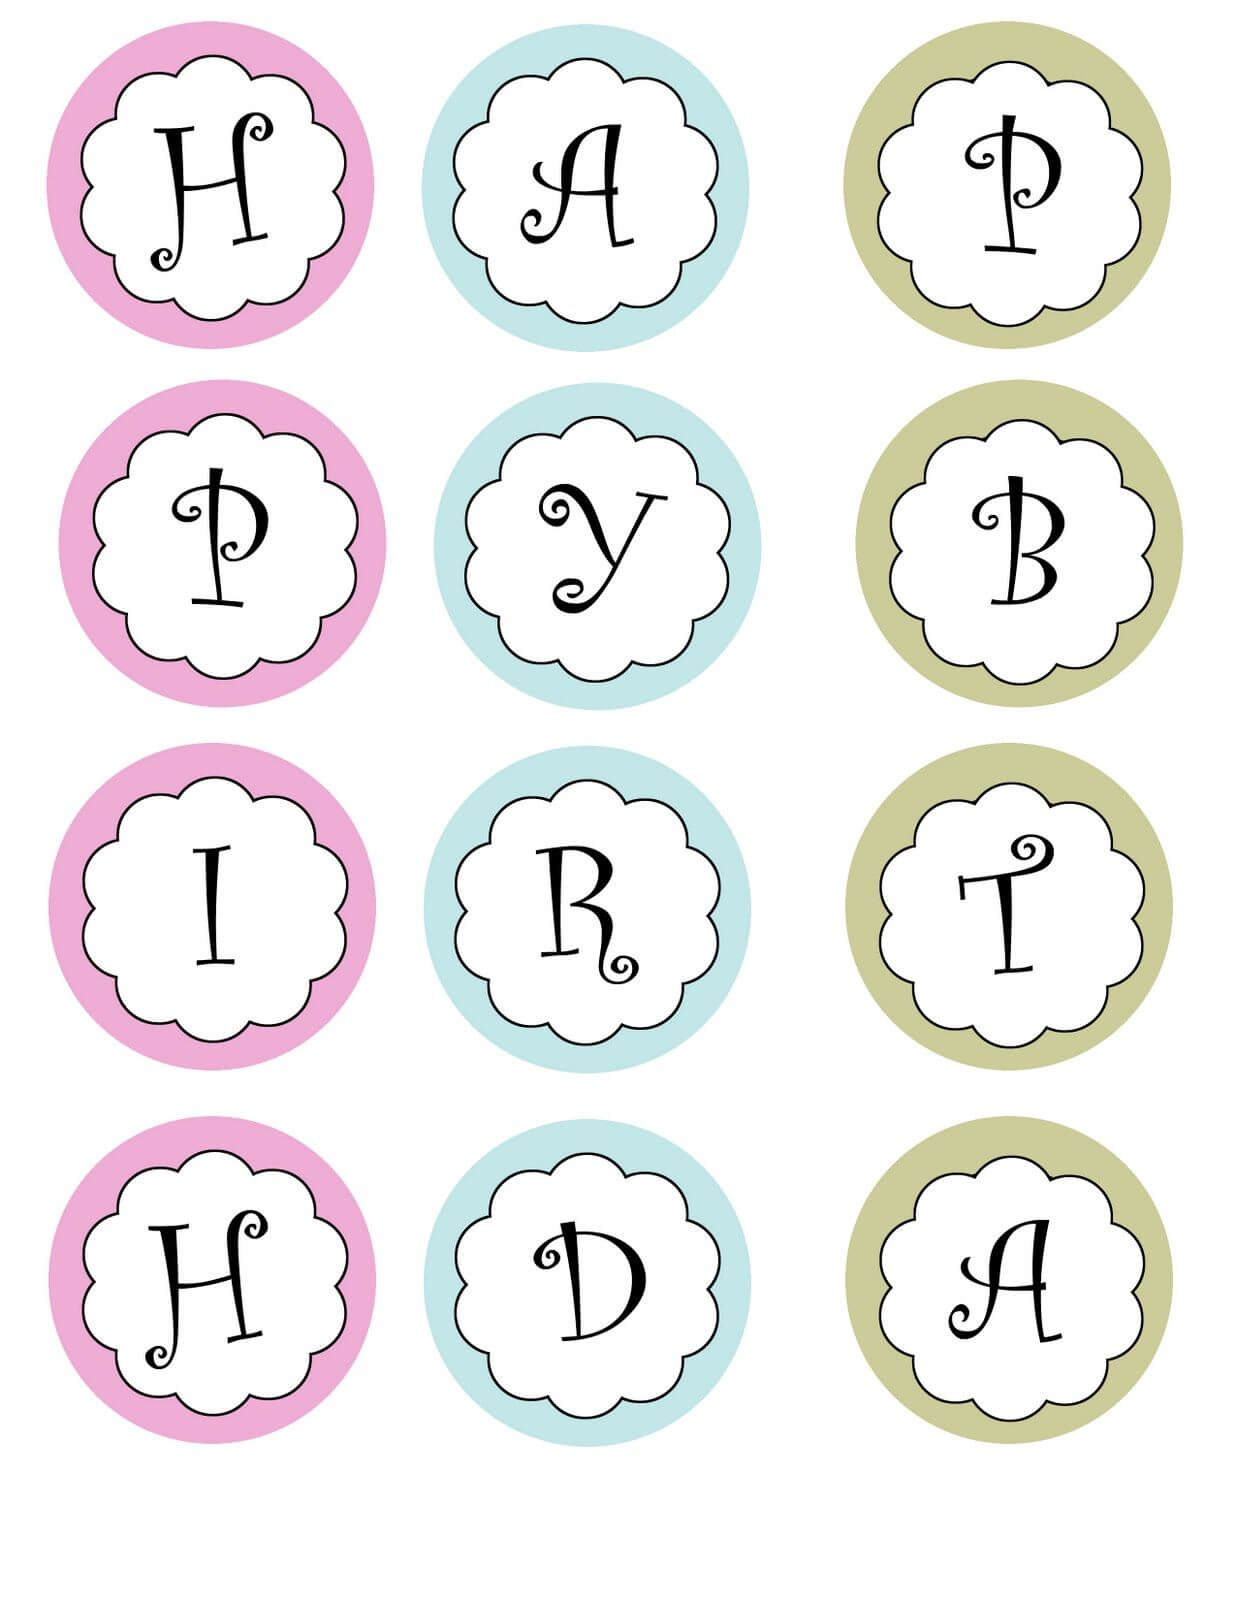 Printable Banners Templates Free | Print Your Own Birthday Throughout Free Printable Party Banner Templates